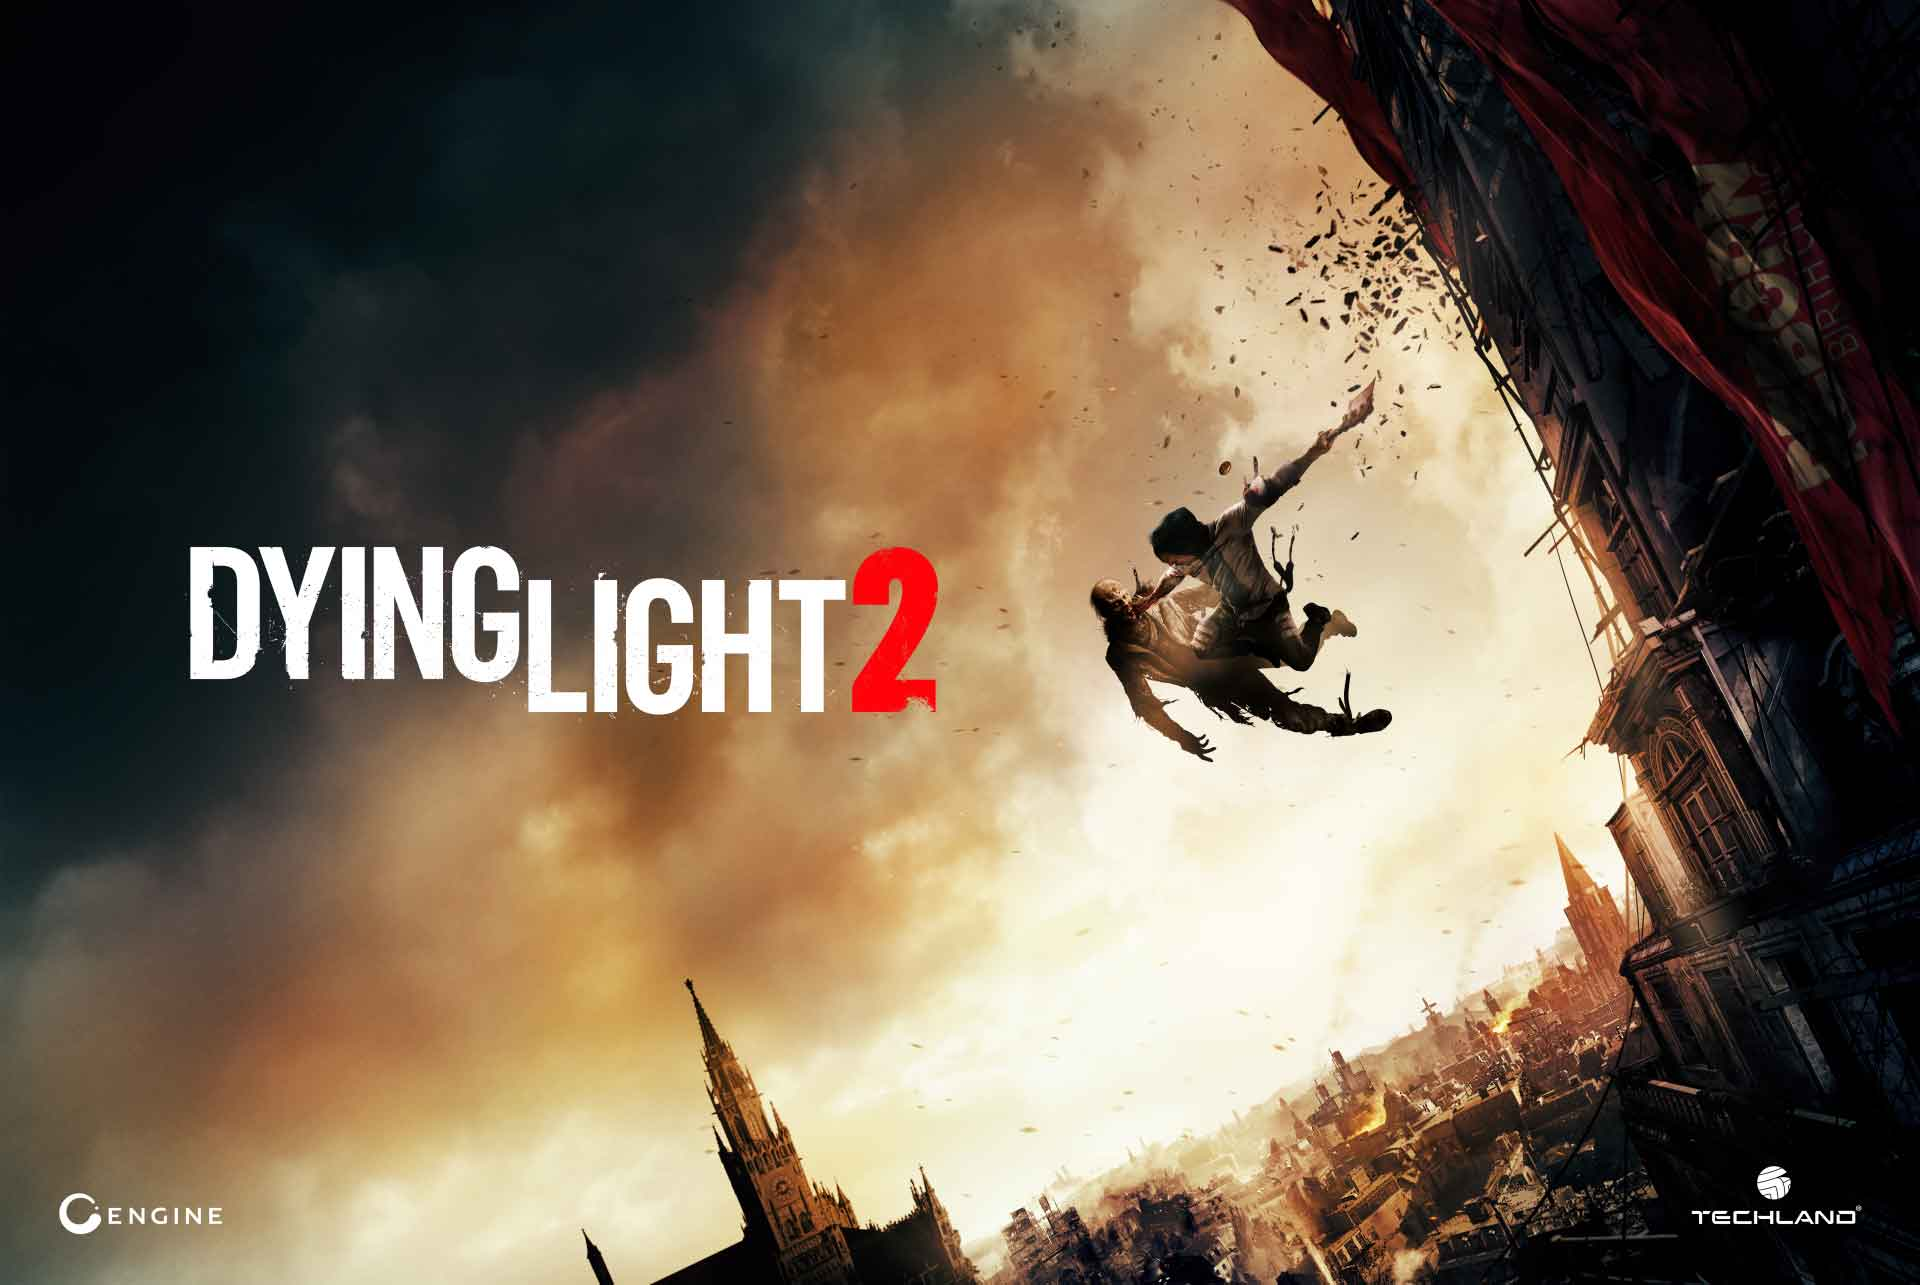 Dying Light 2: Stay Human is now delayed until 2022